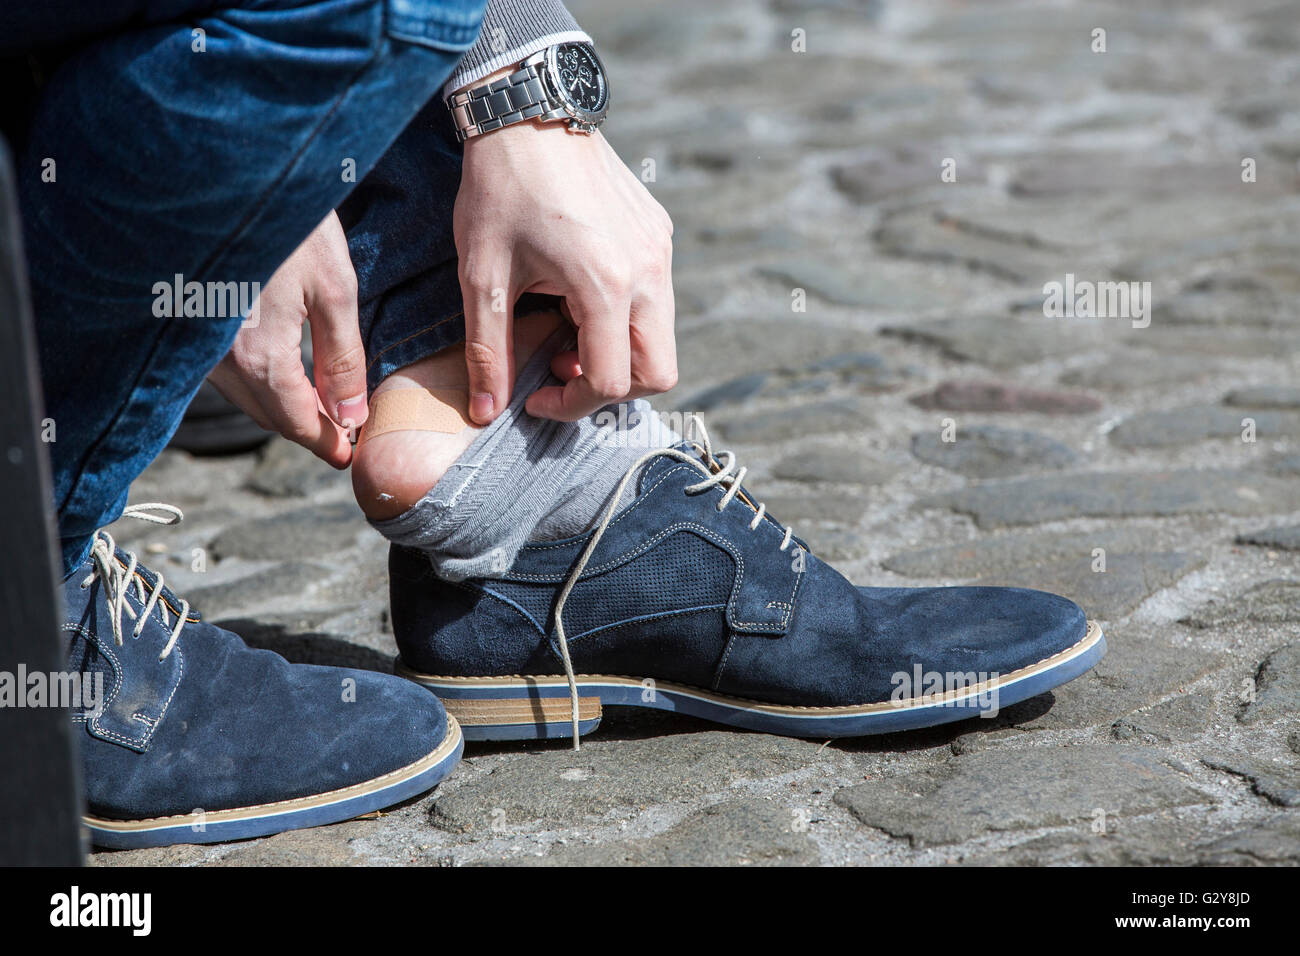 EDINBURGH, UK - 24 APRIL 2016.  Man putting plaster on heel to protect blister caused by new shoes. - Stock Image